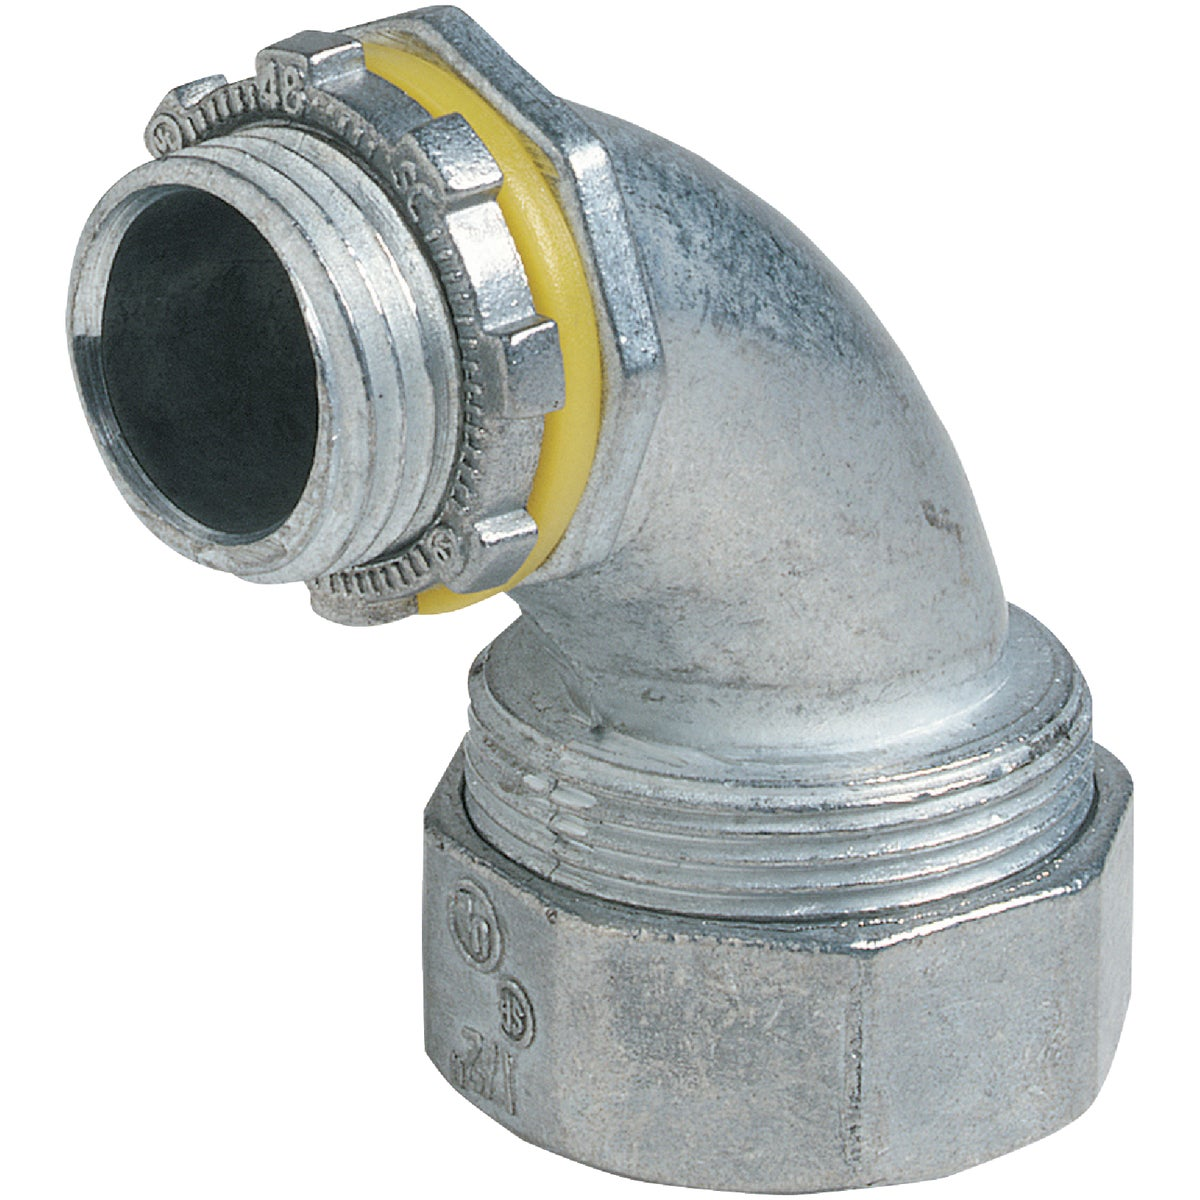 "1/2"" LIQTITE CONNECTOR - LT2911 by Thomas & Betts"